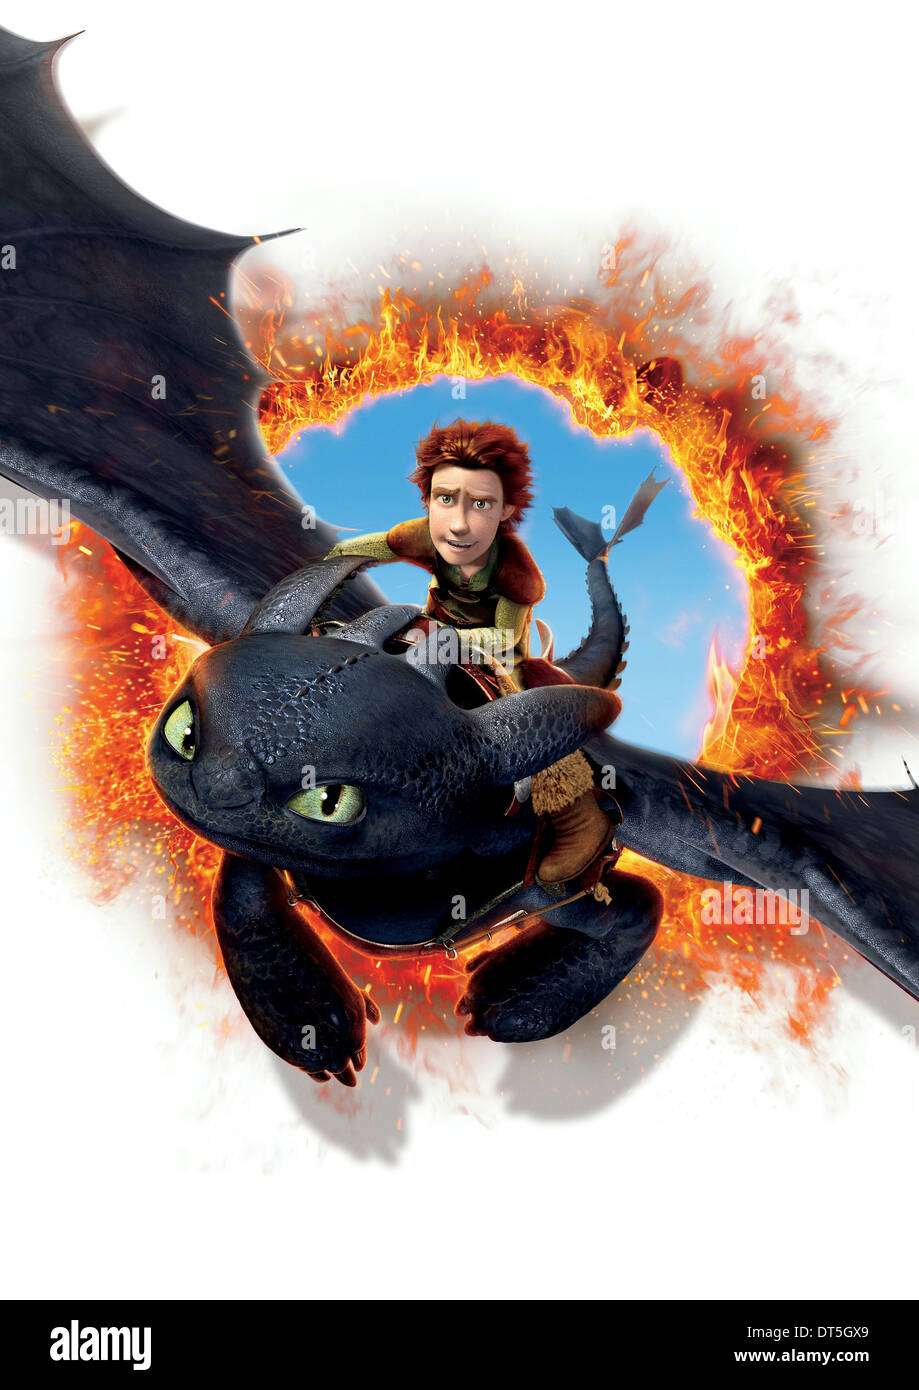 Toothless Hiccup How To Train Your Dragon 2010 Stock Photo Alamy